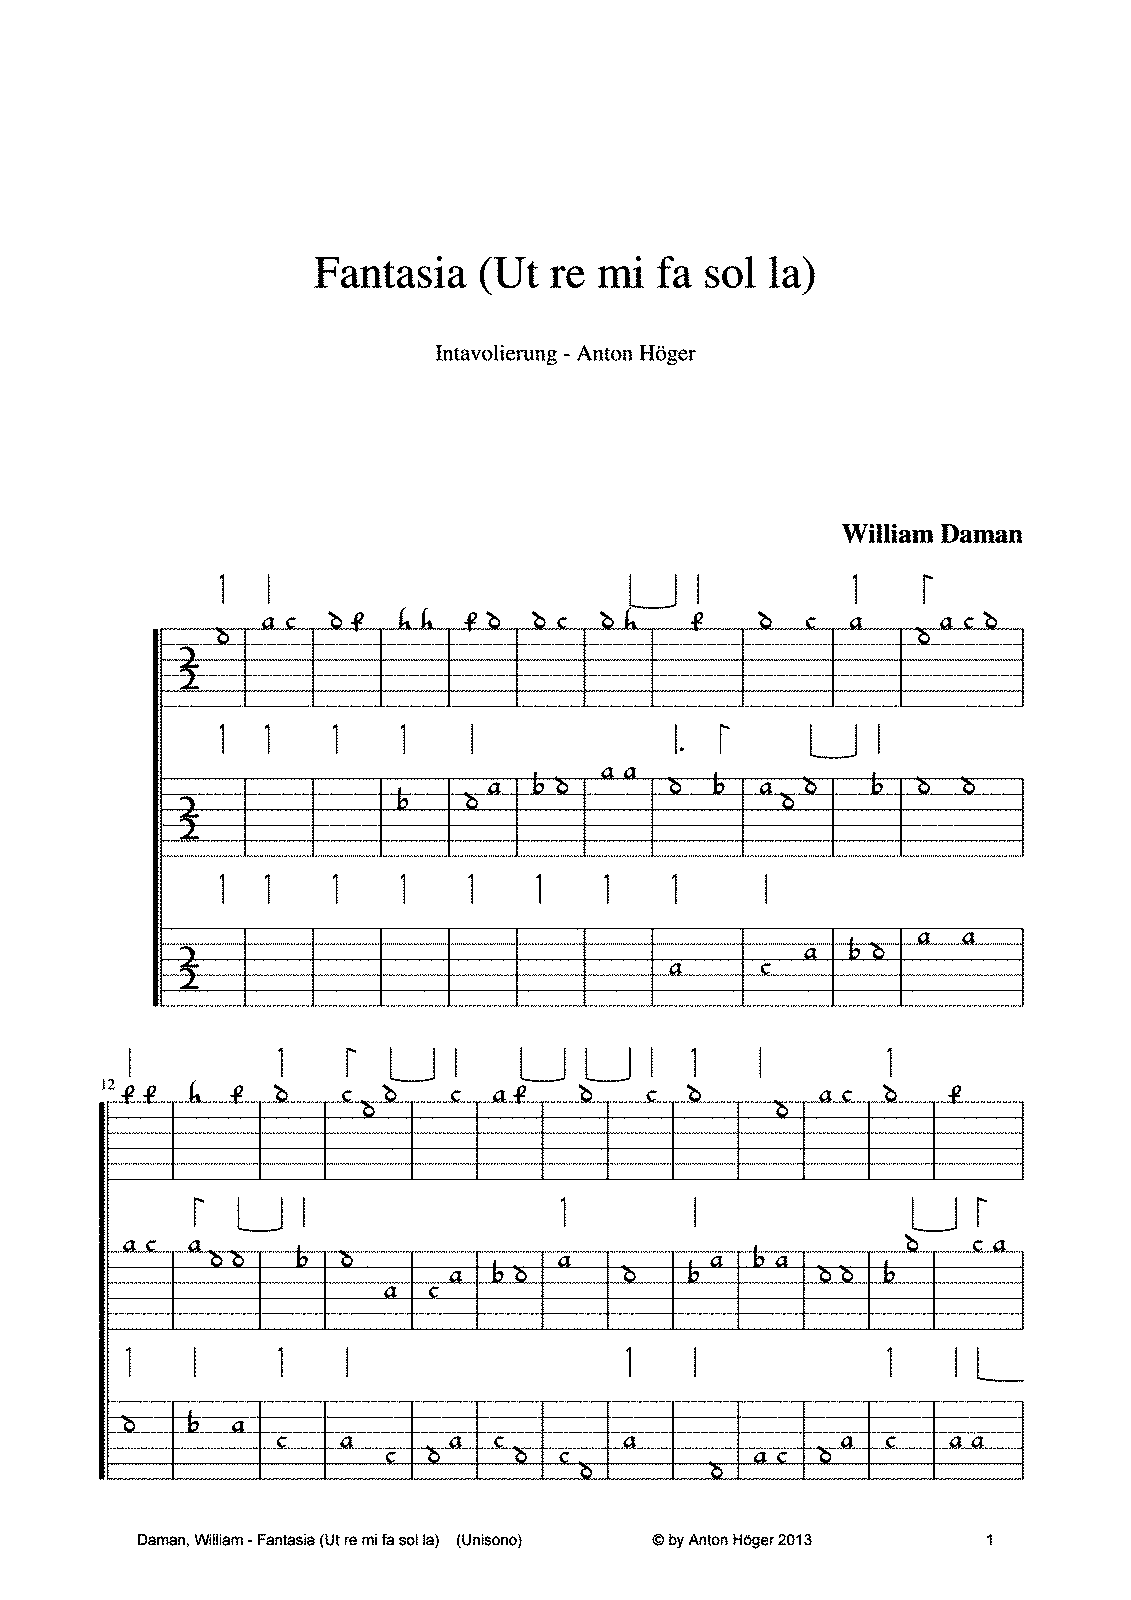 PMLP483000-Daman, William - Fantasia (Ut re mi fa sol la).pdf